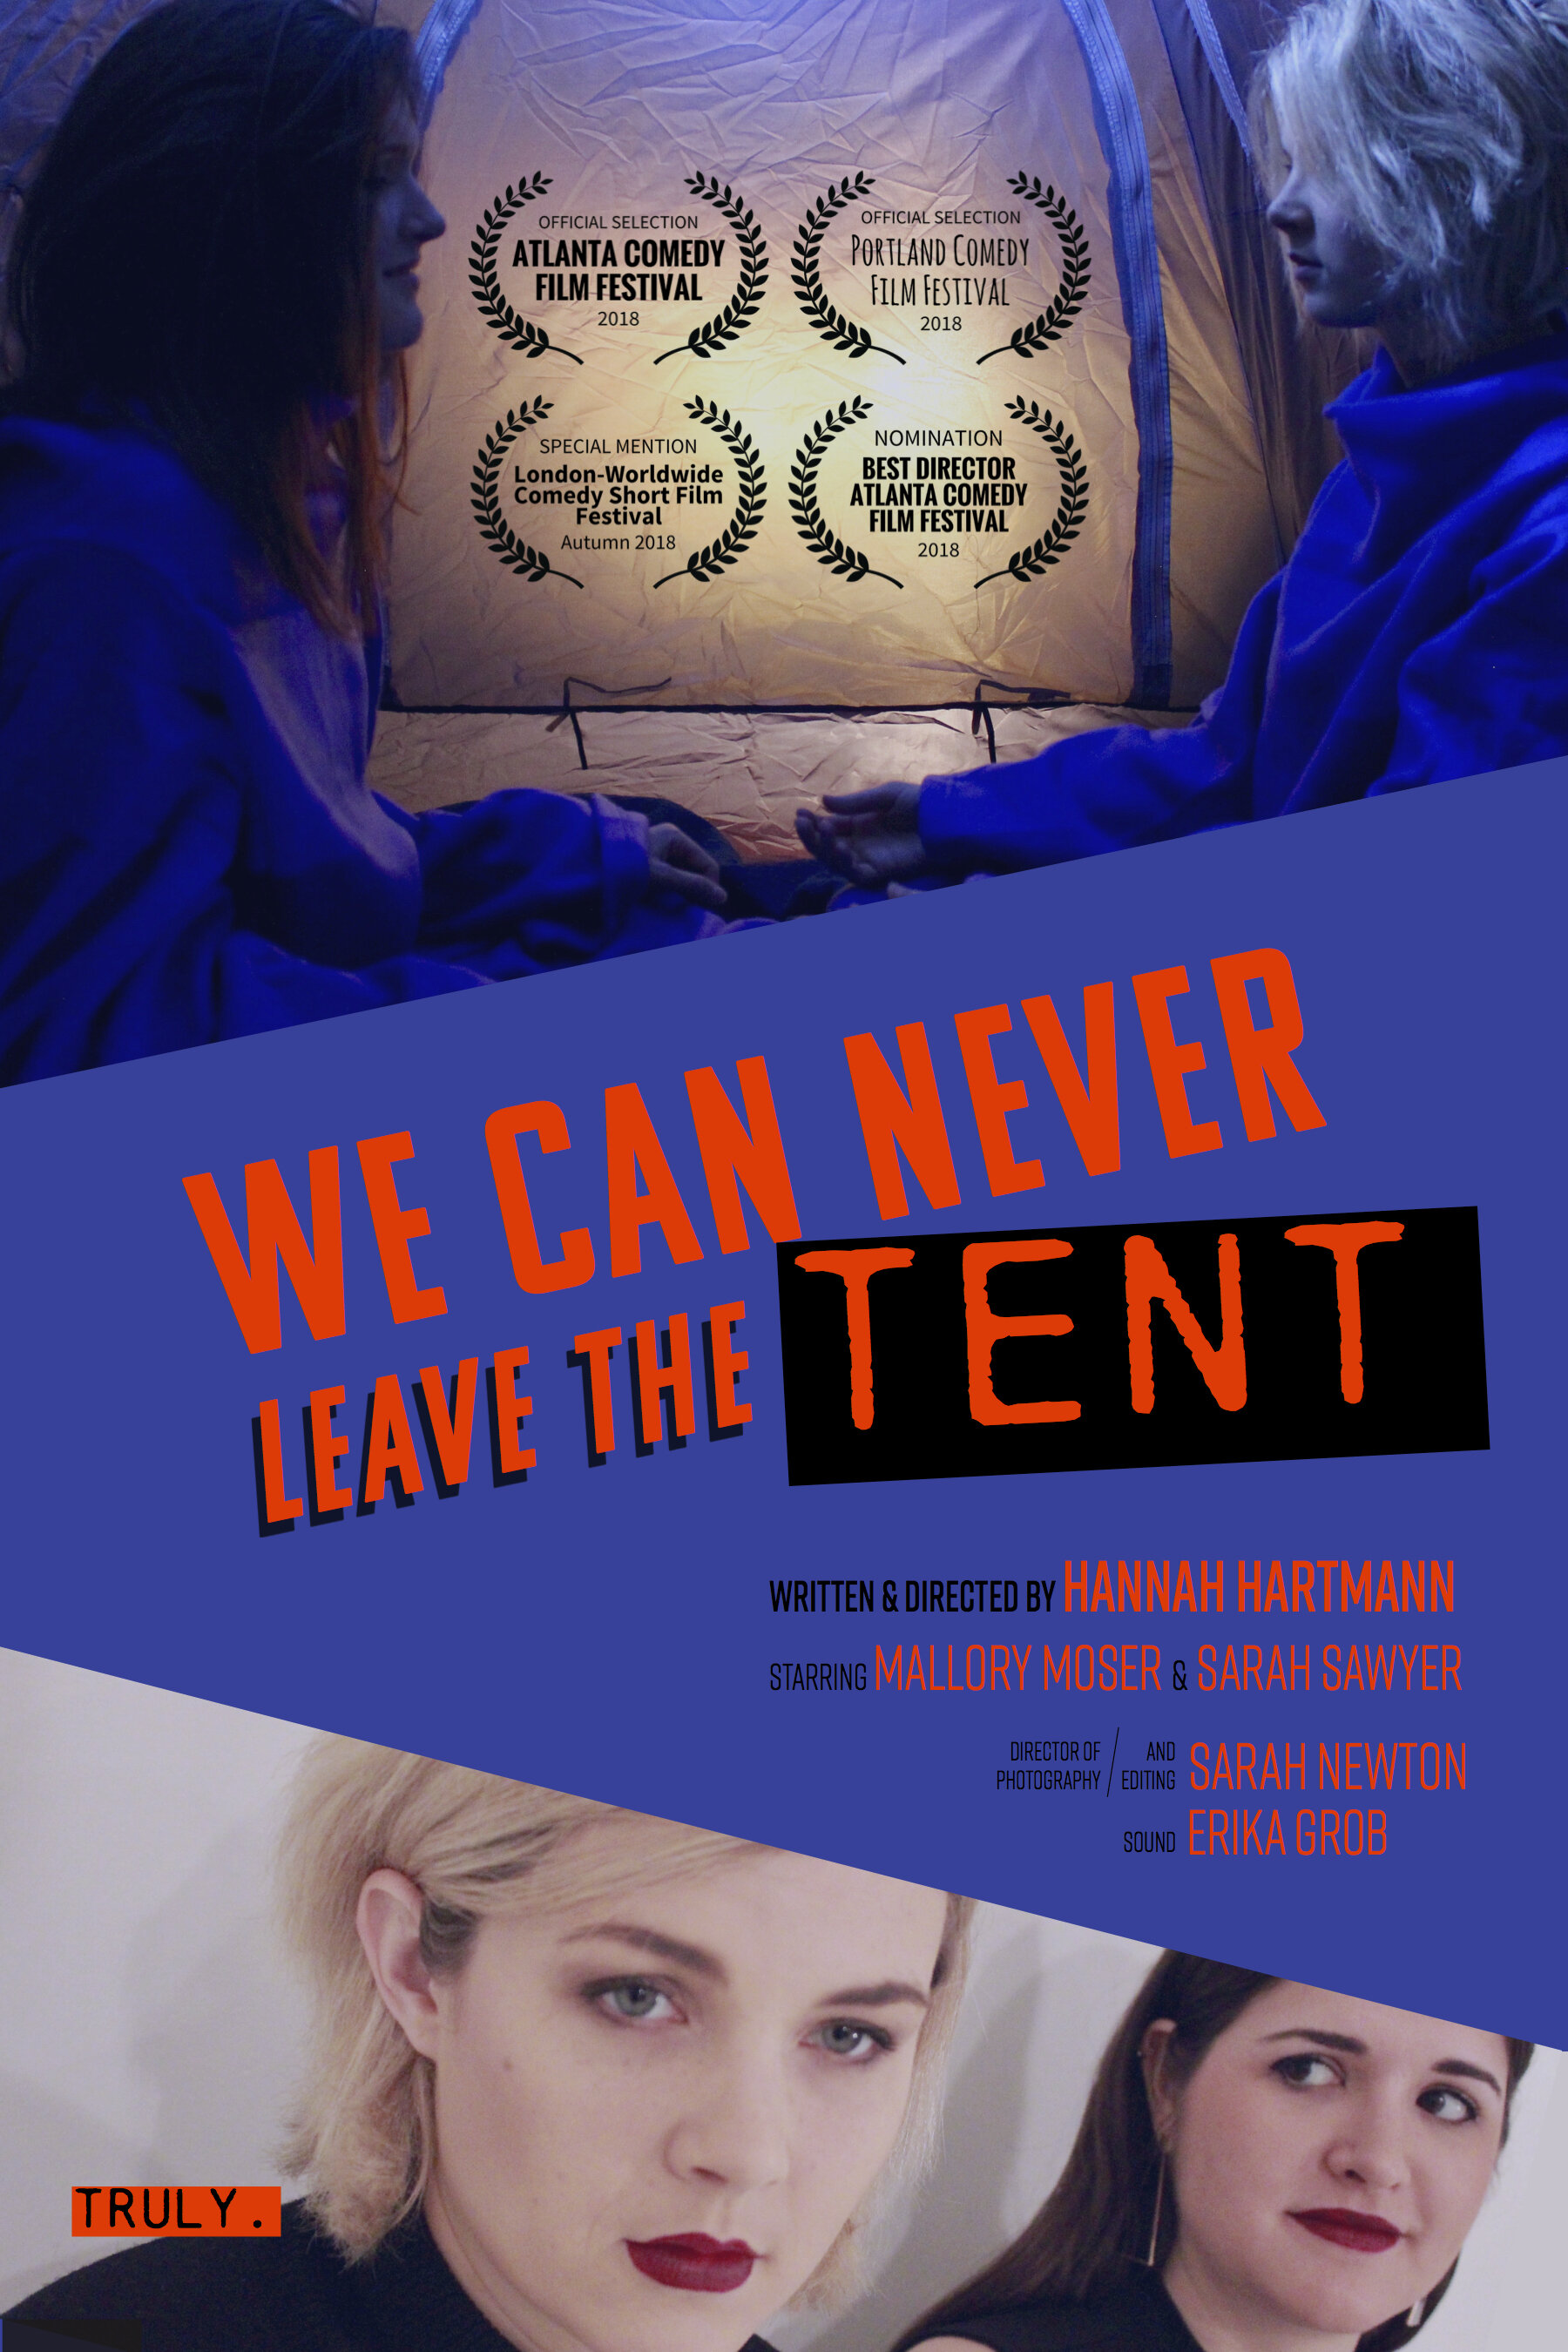 We Can Never Leave the Tent.Poster2.jpg